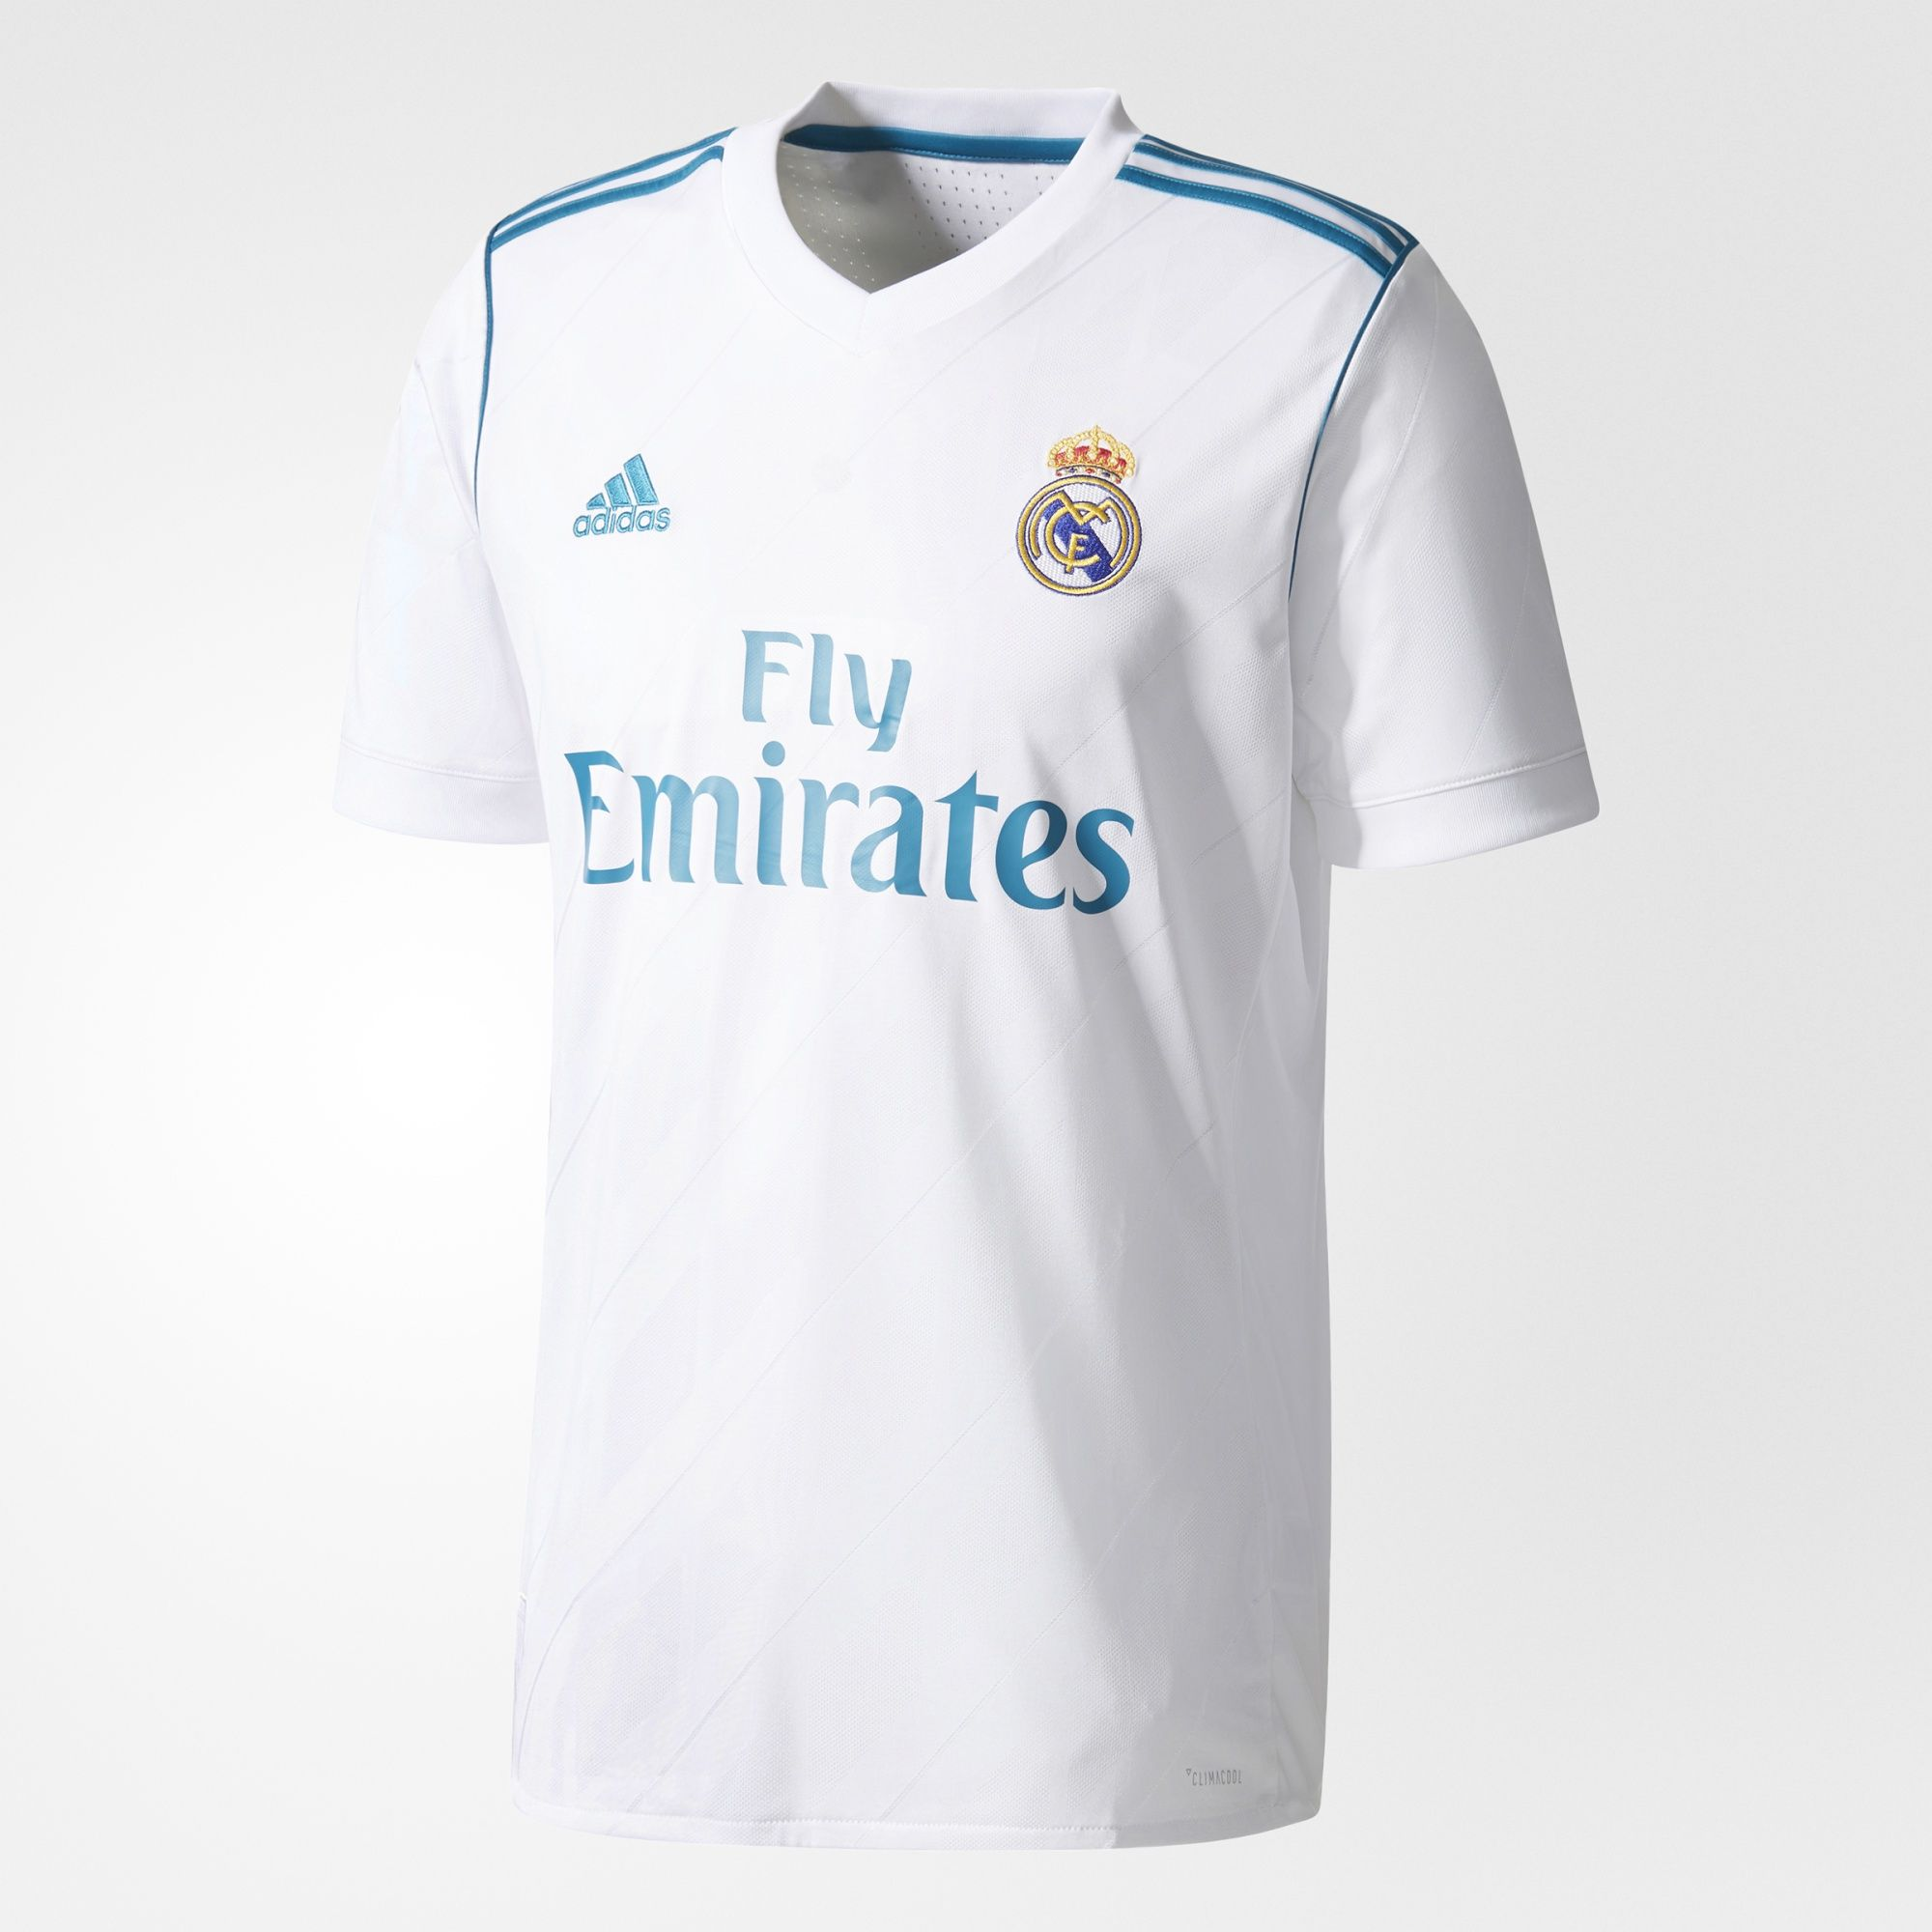 wholesale dealer 301b0 9d537 real madrid white and gold jersey on sale > OFF31% Discounts